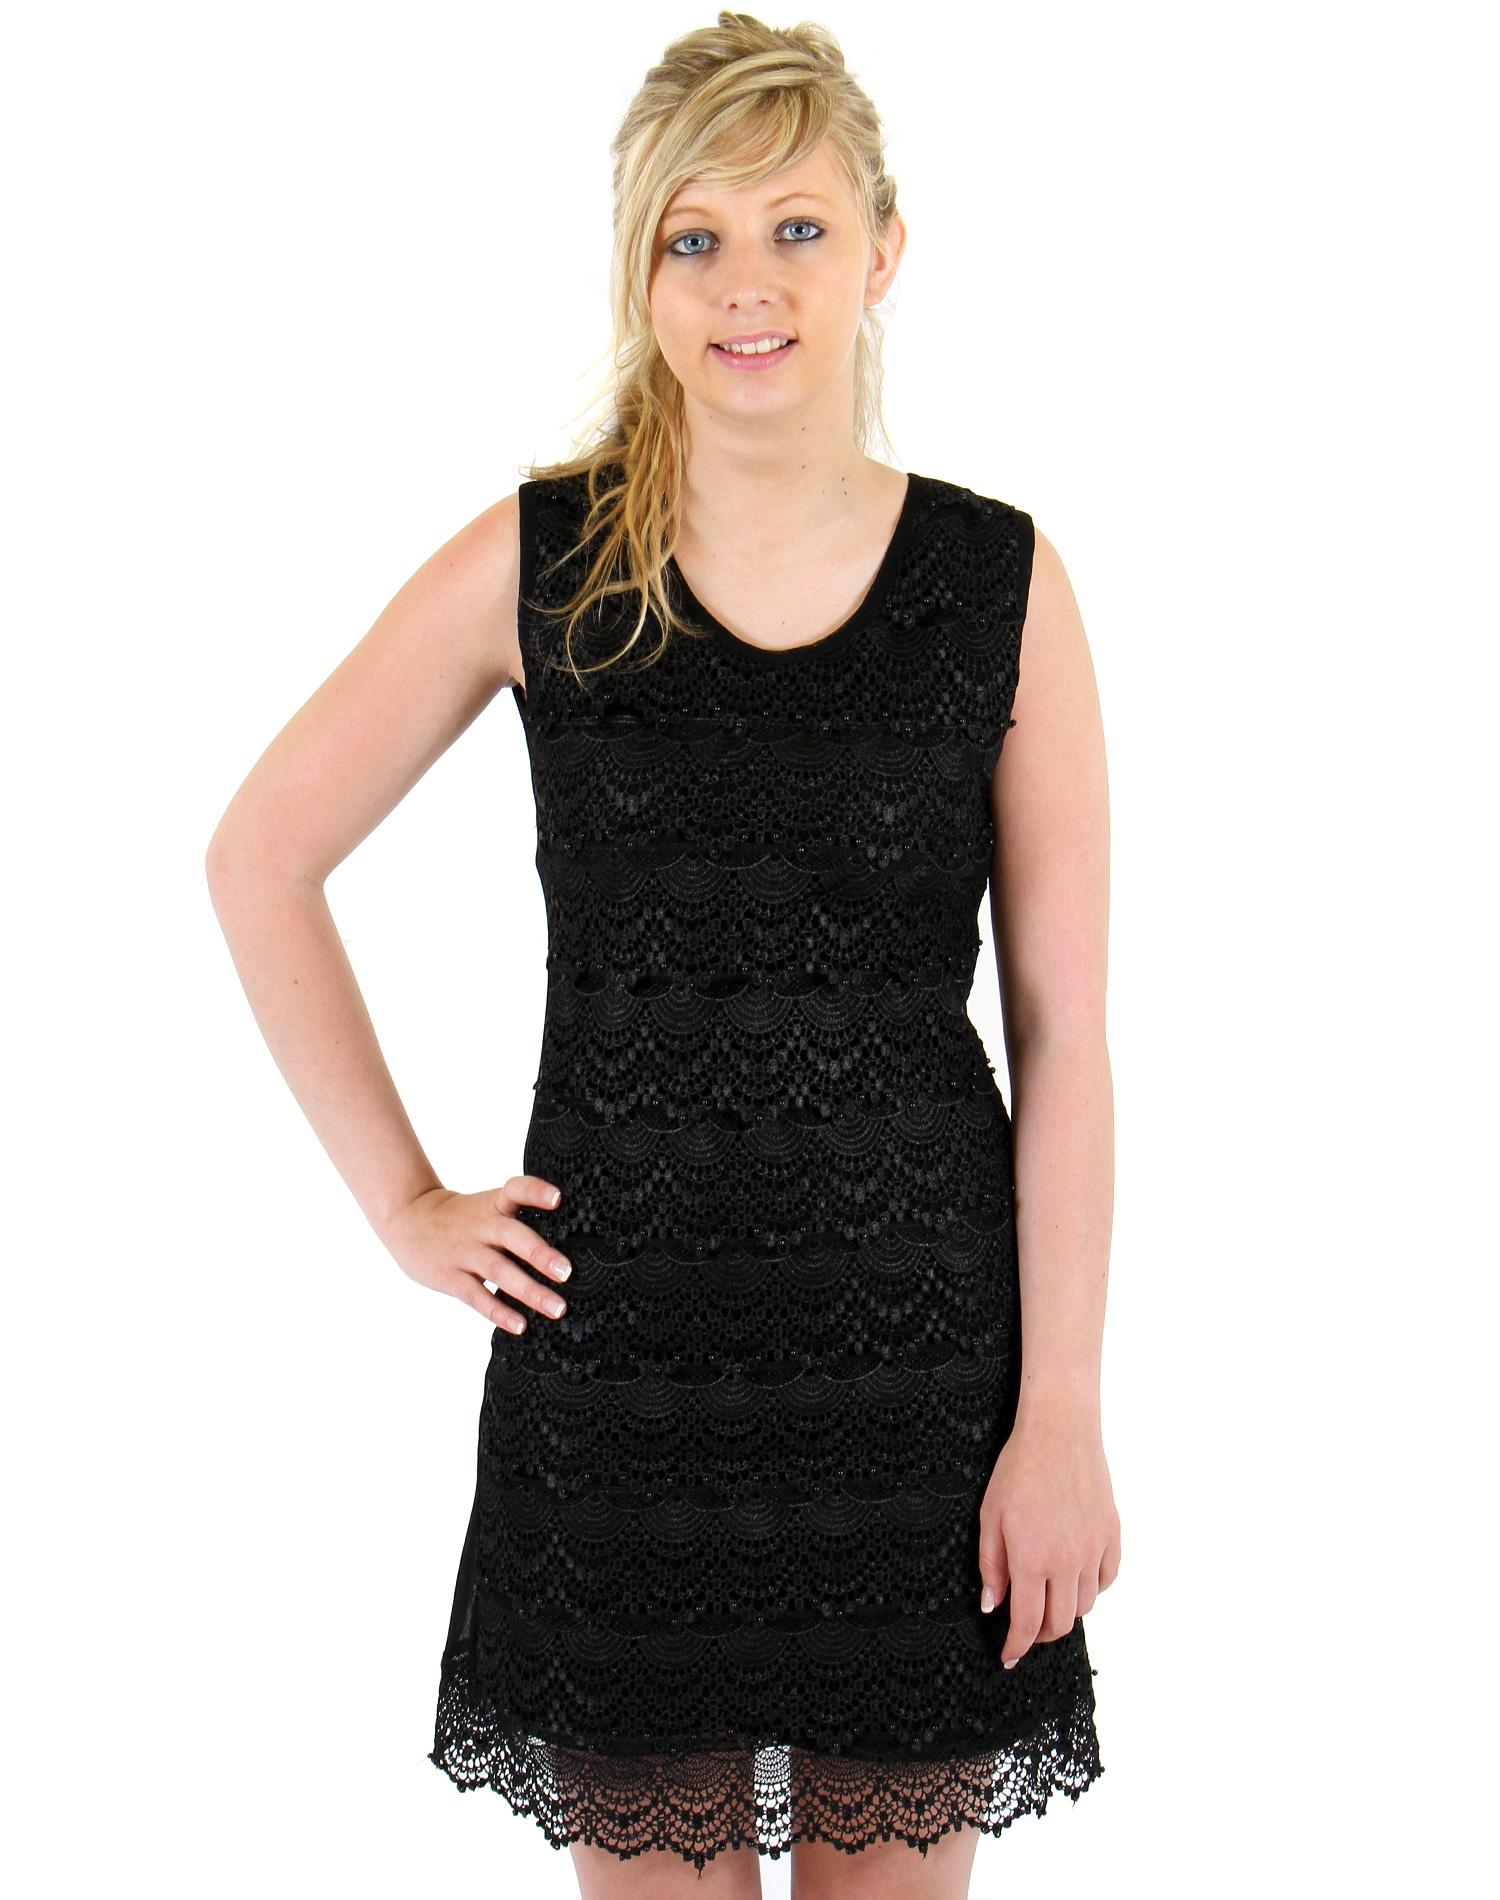 Robe molly bracken noir